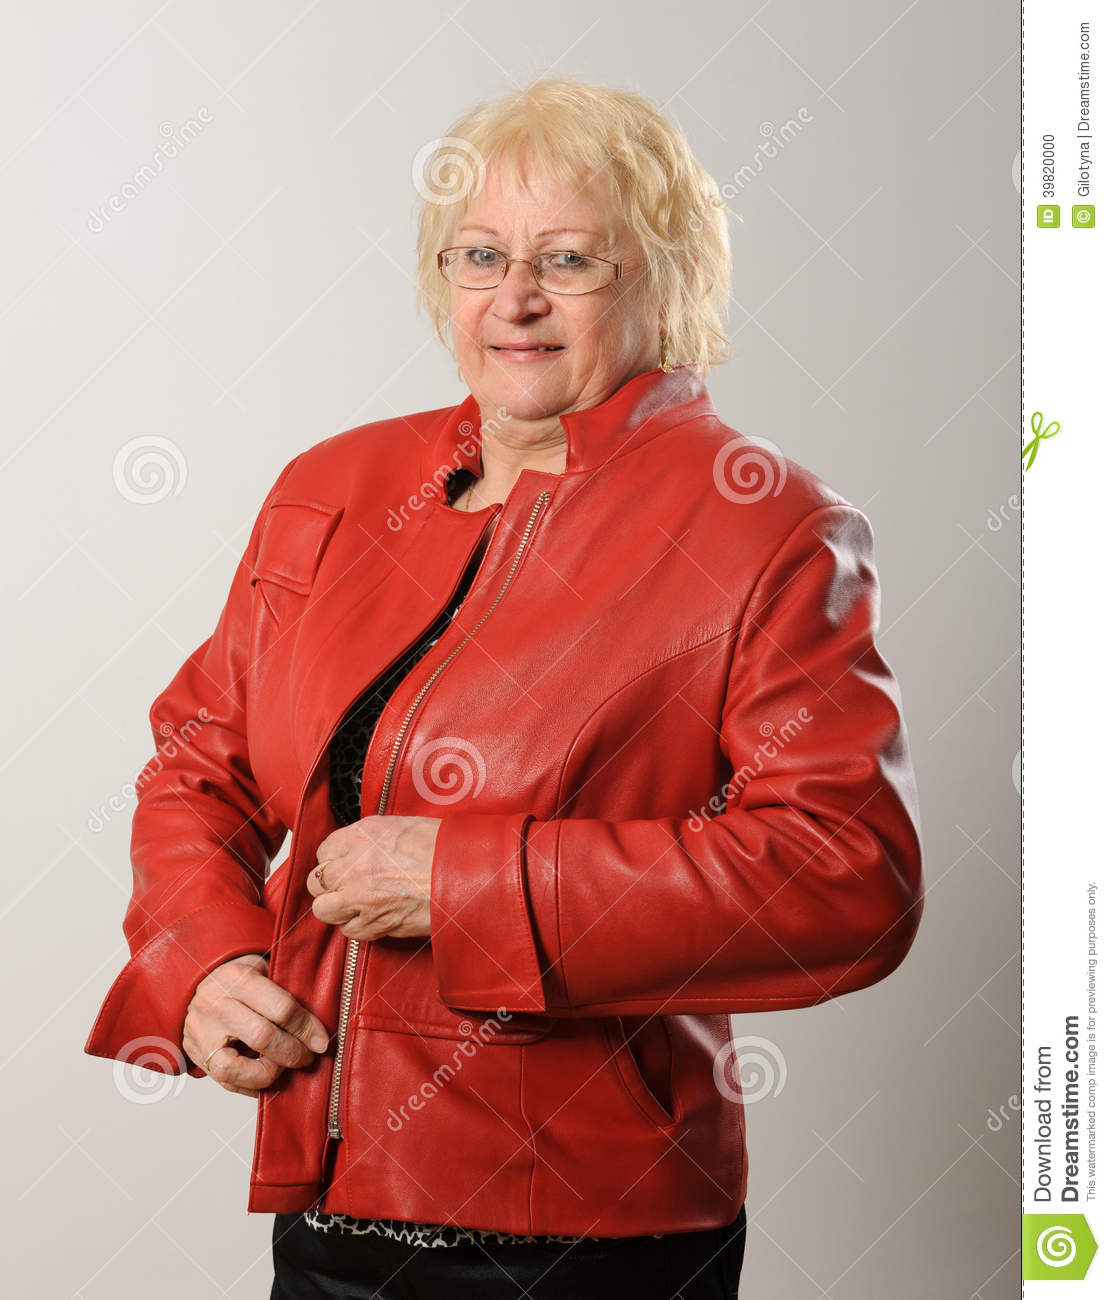 Woman Zipping Red Jacket  Stock Photo   Image  39820000